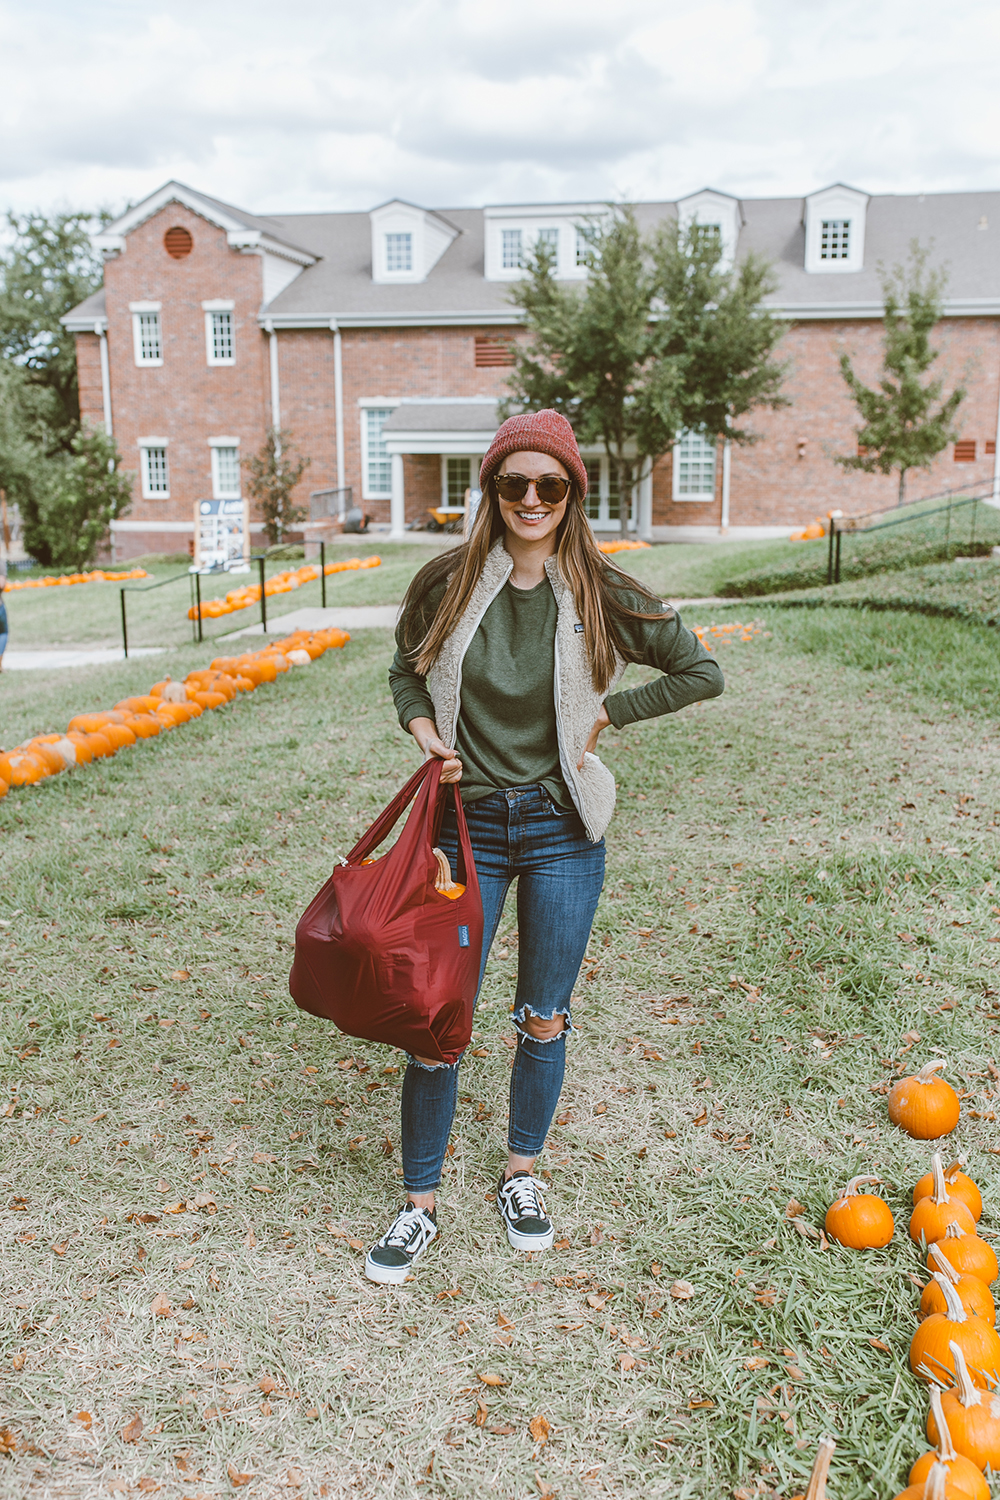 livvyland-blog-olivia-watson-austin-texas-lifestyle-fashion-blogger-patagonia-los-gatos-vest-outfit-pumpkin-patch-5